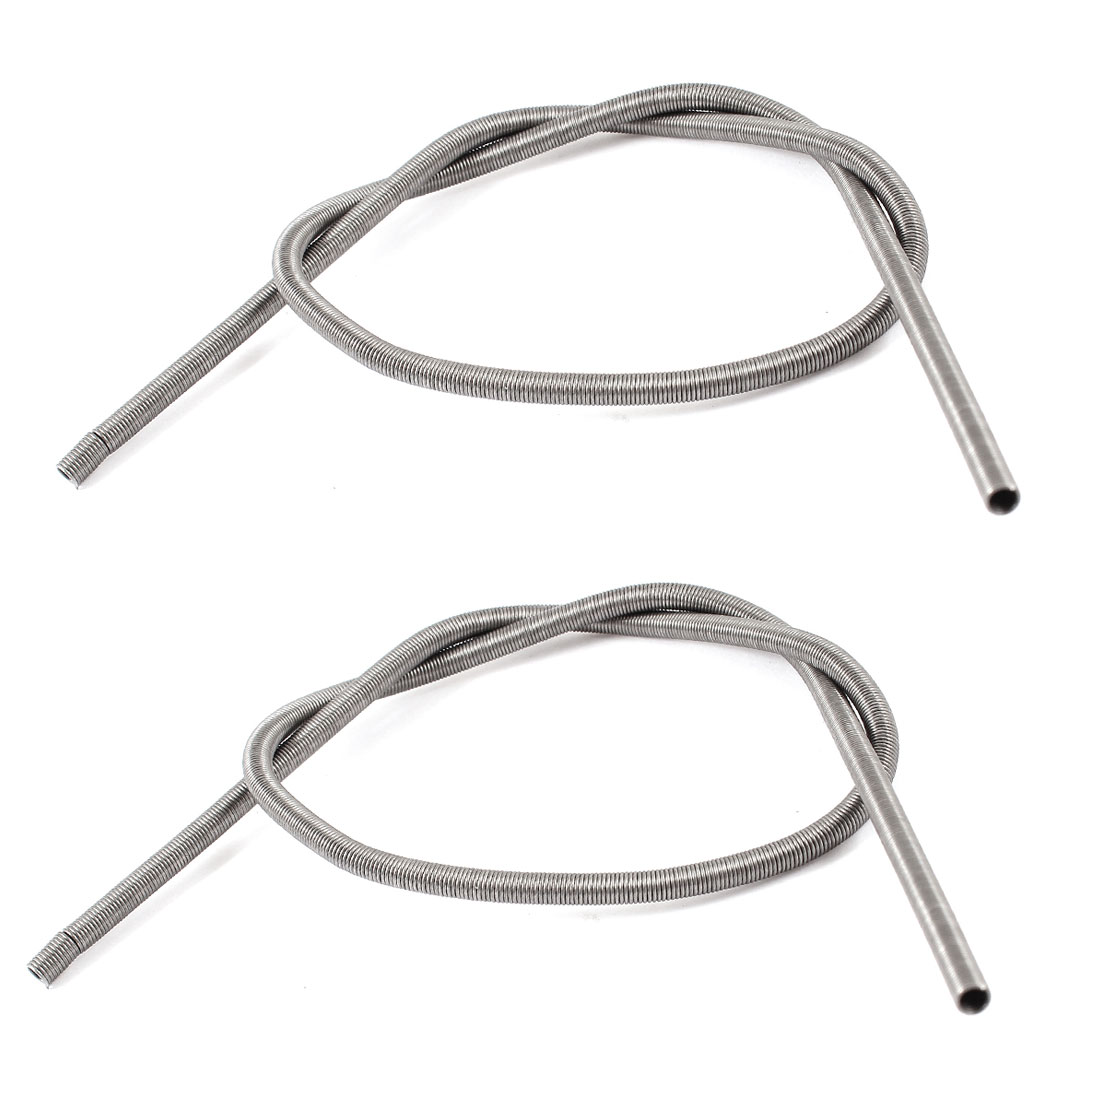 220V 1200W Kiln Furnace Heating Element Wire Coil Pair